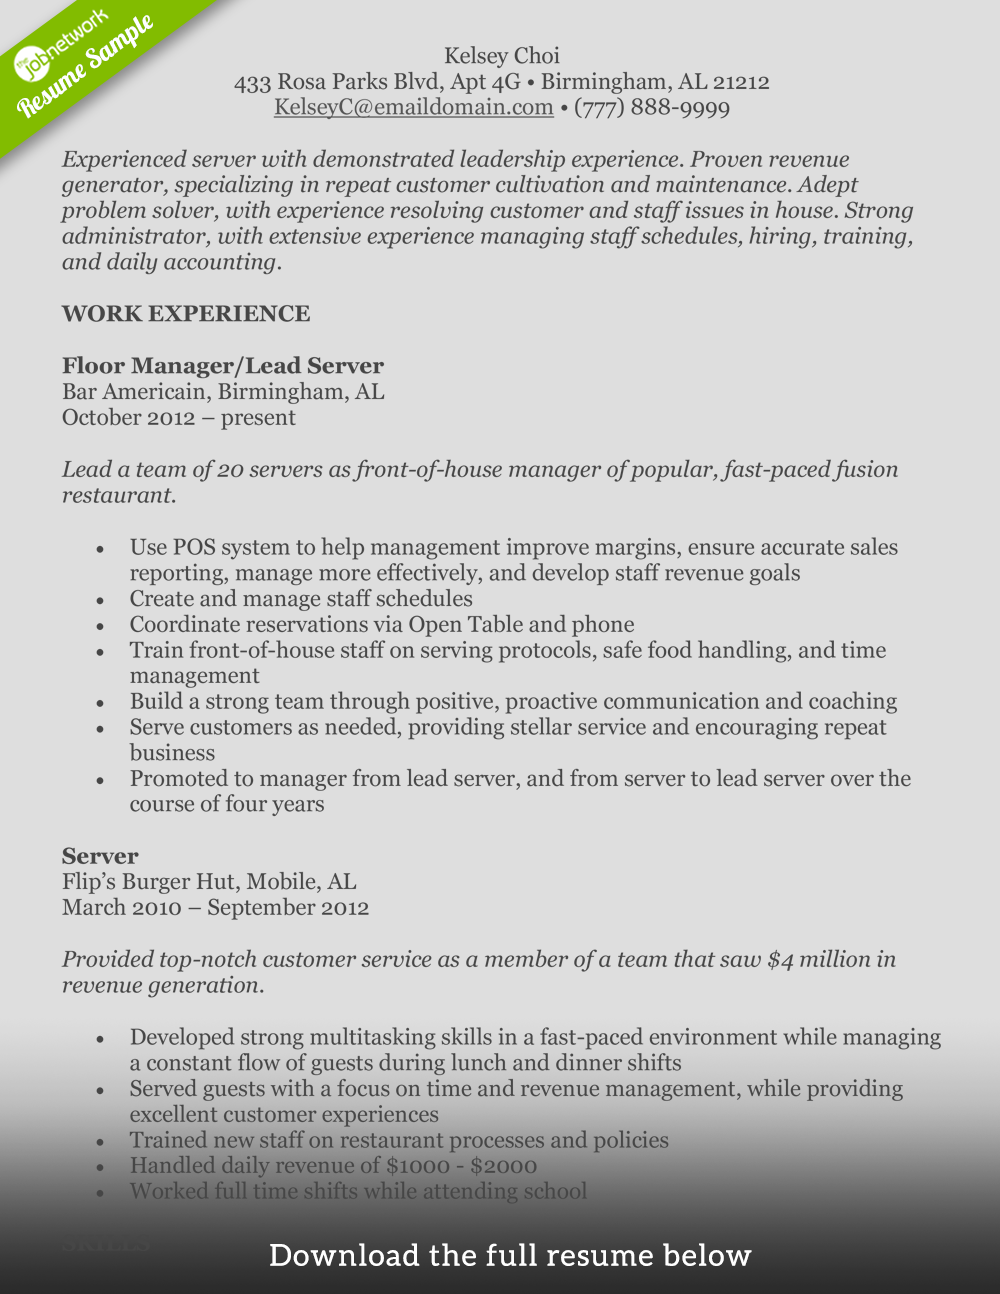 How to Write a Perfect Food Service Resume (Examples Included)